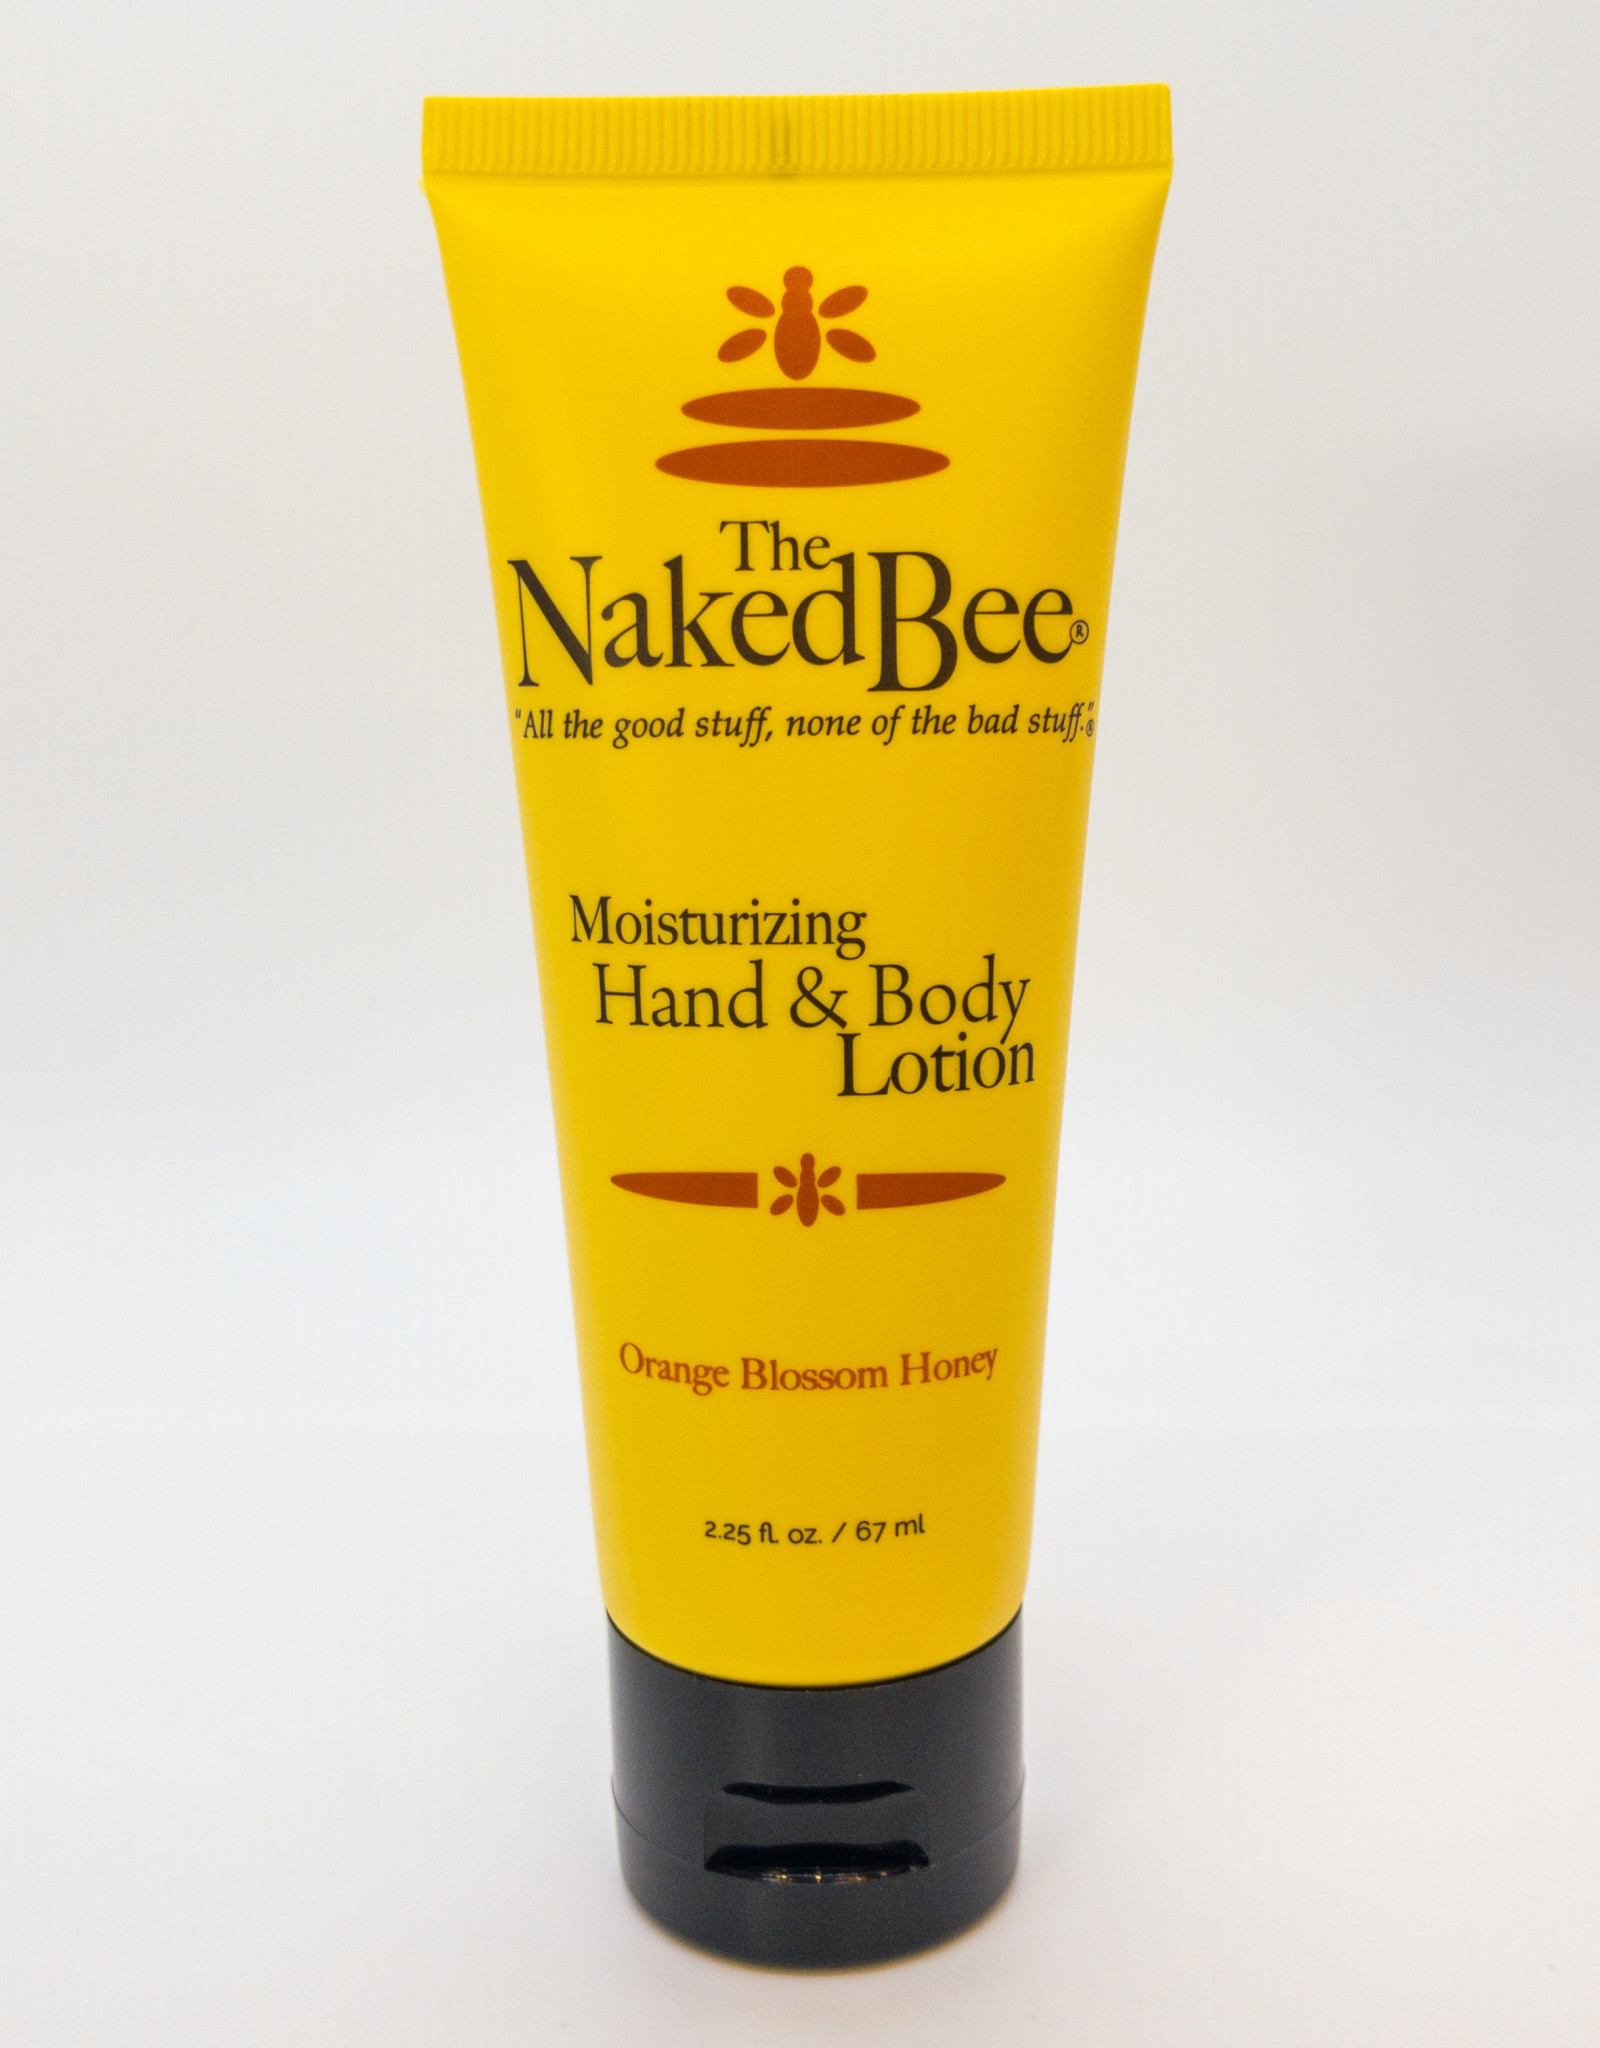 The Naked Bee The Naked Bee - Moisturizing Hand and Body Lotion in Orange Blossom Honey, 2.25 oz.